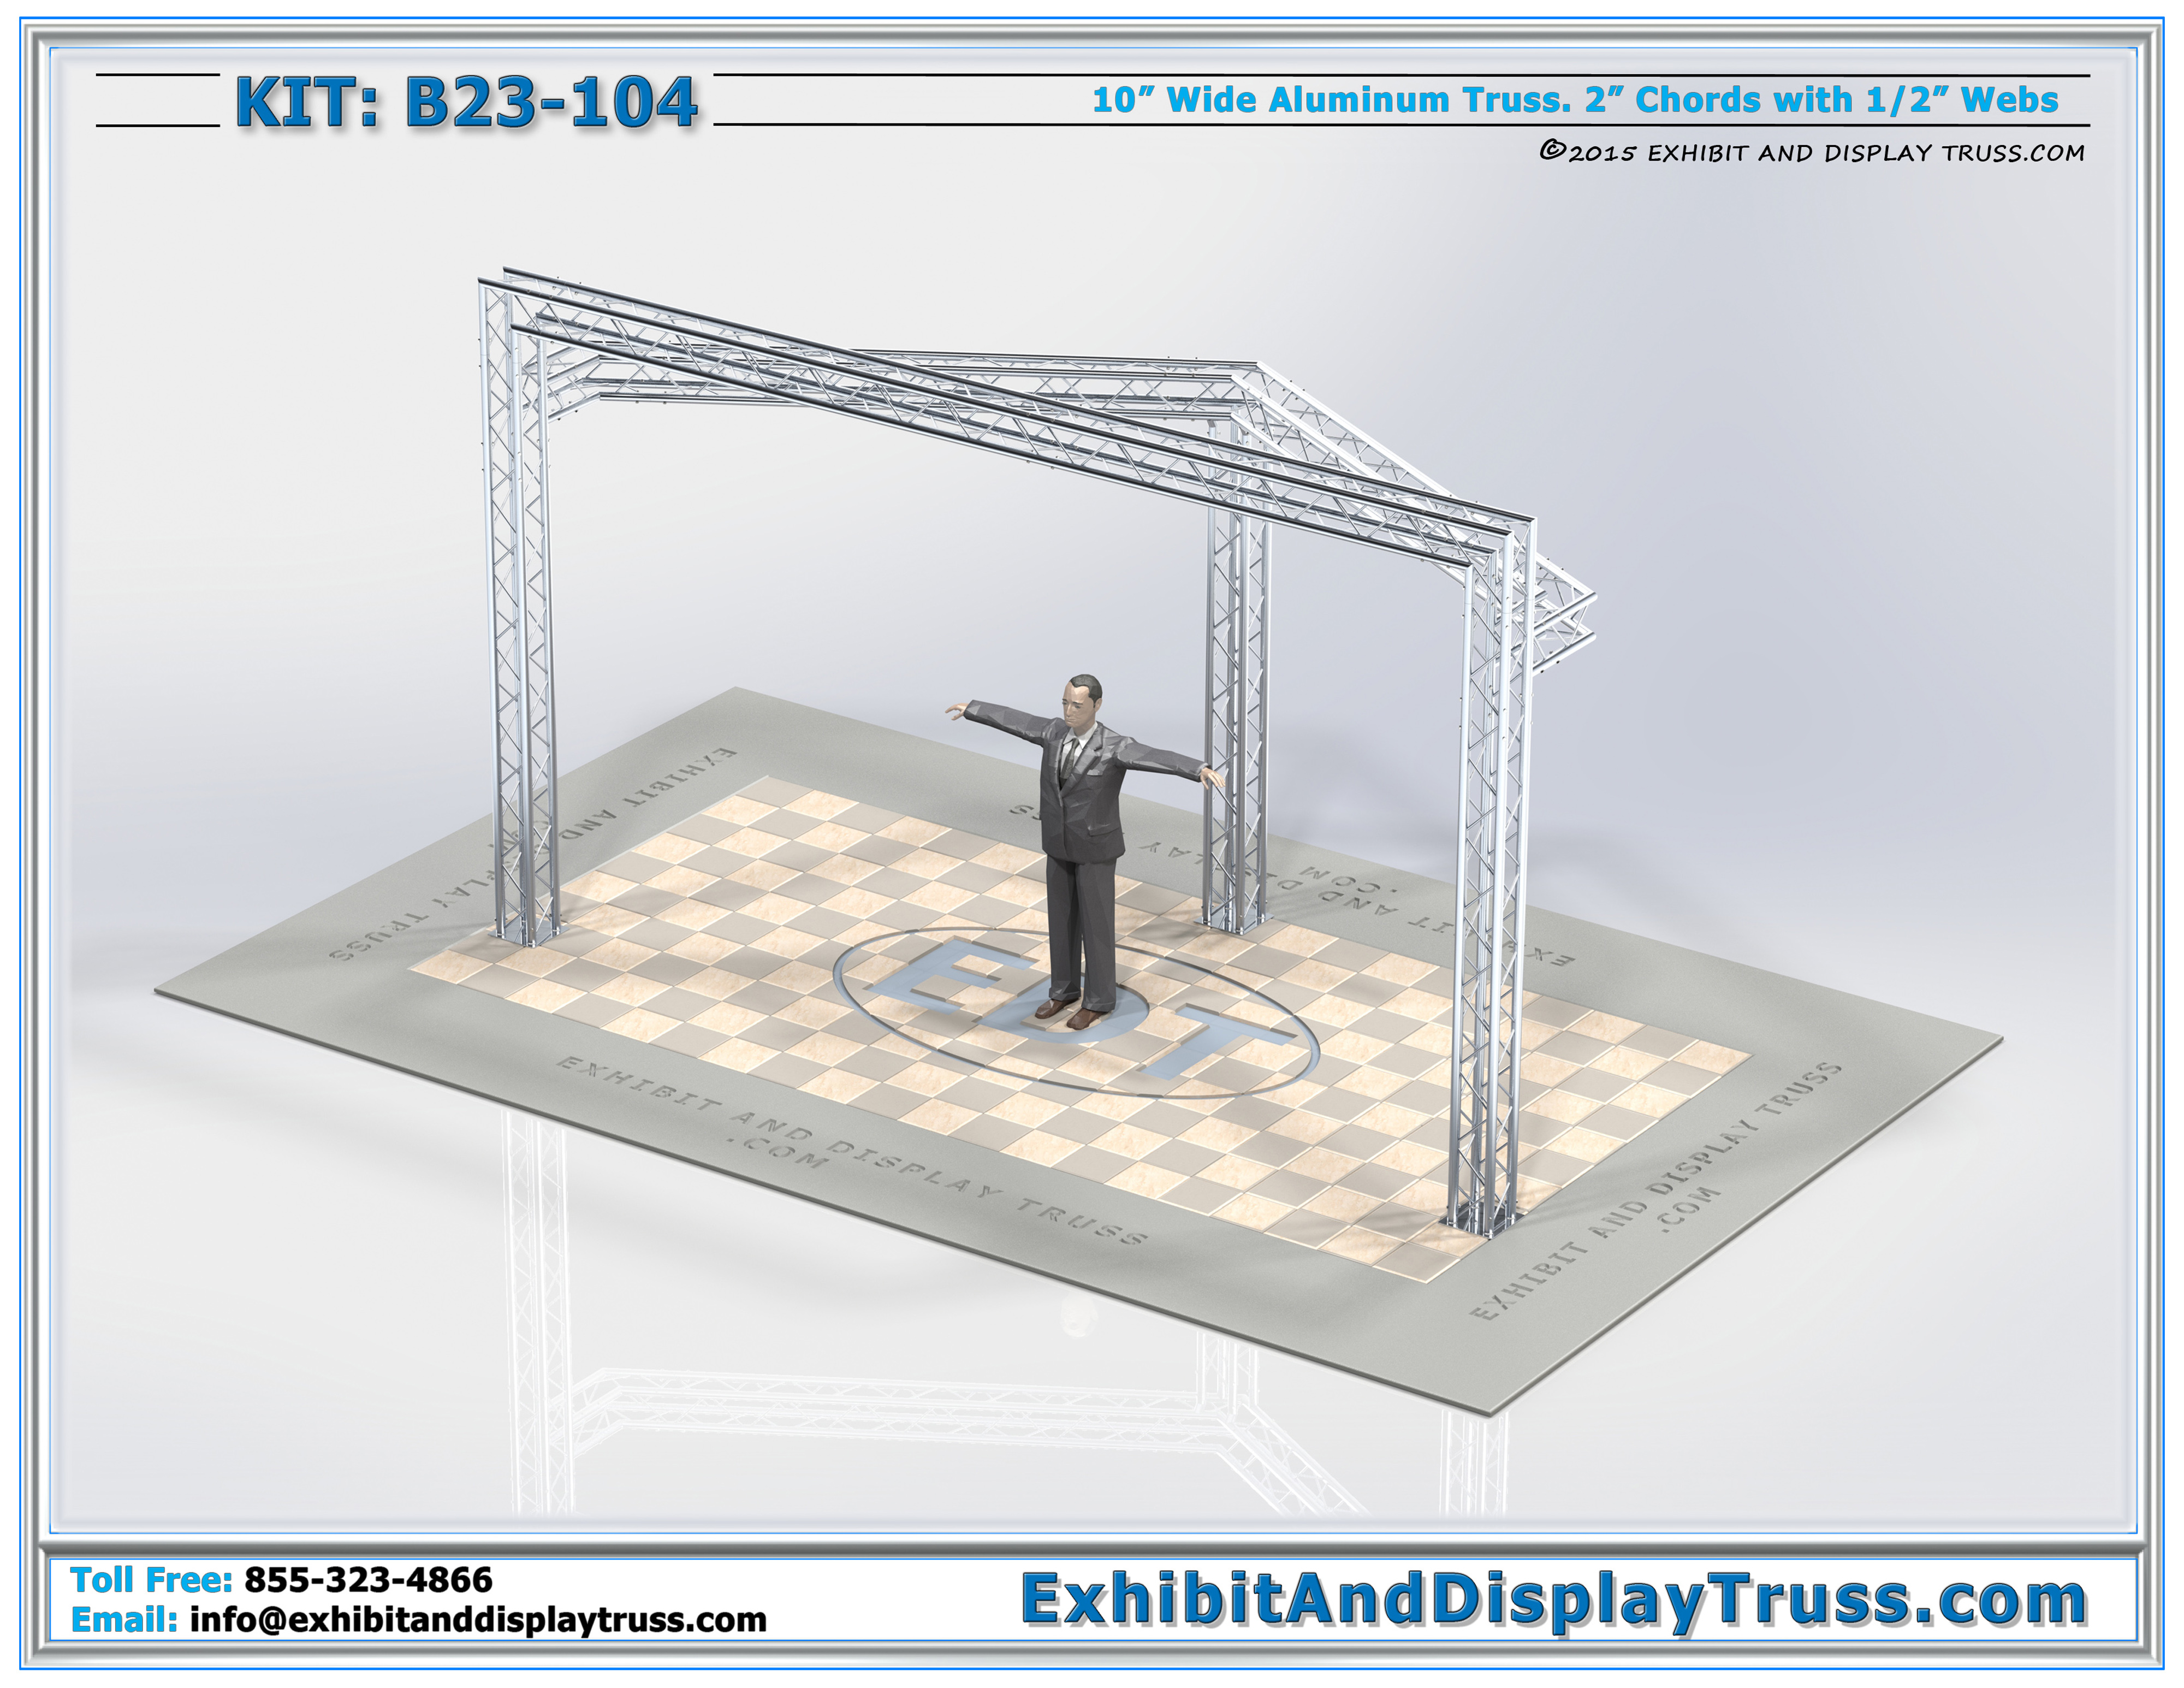 Trade Show Booth Dimensions : Kit b portable aluminum truss trade show for